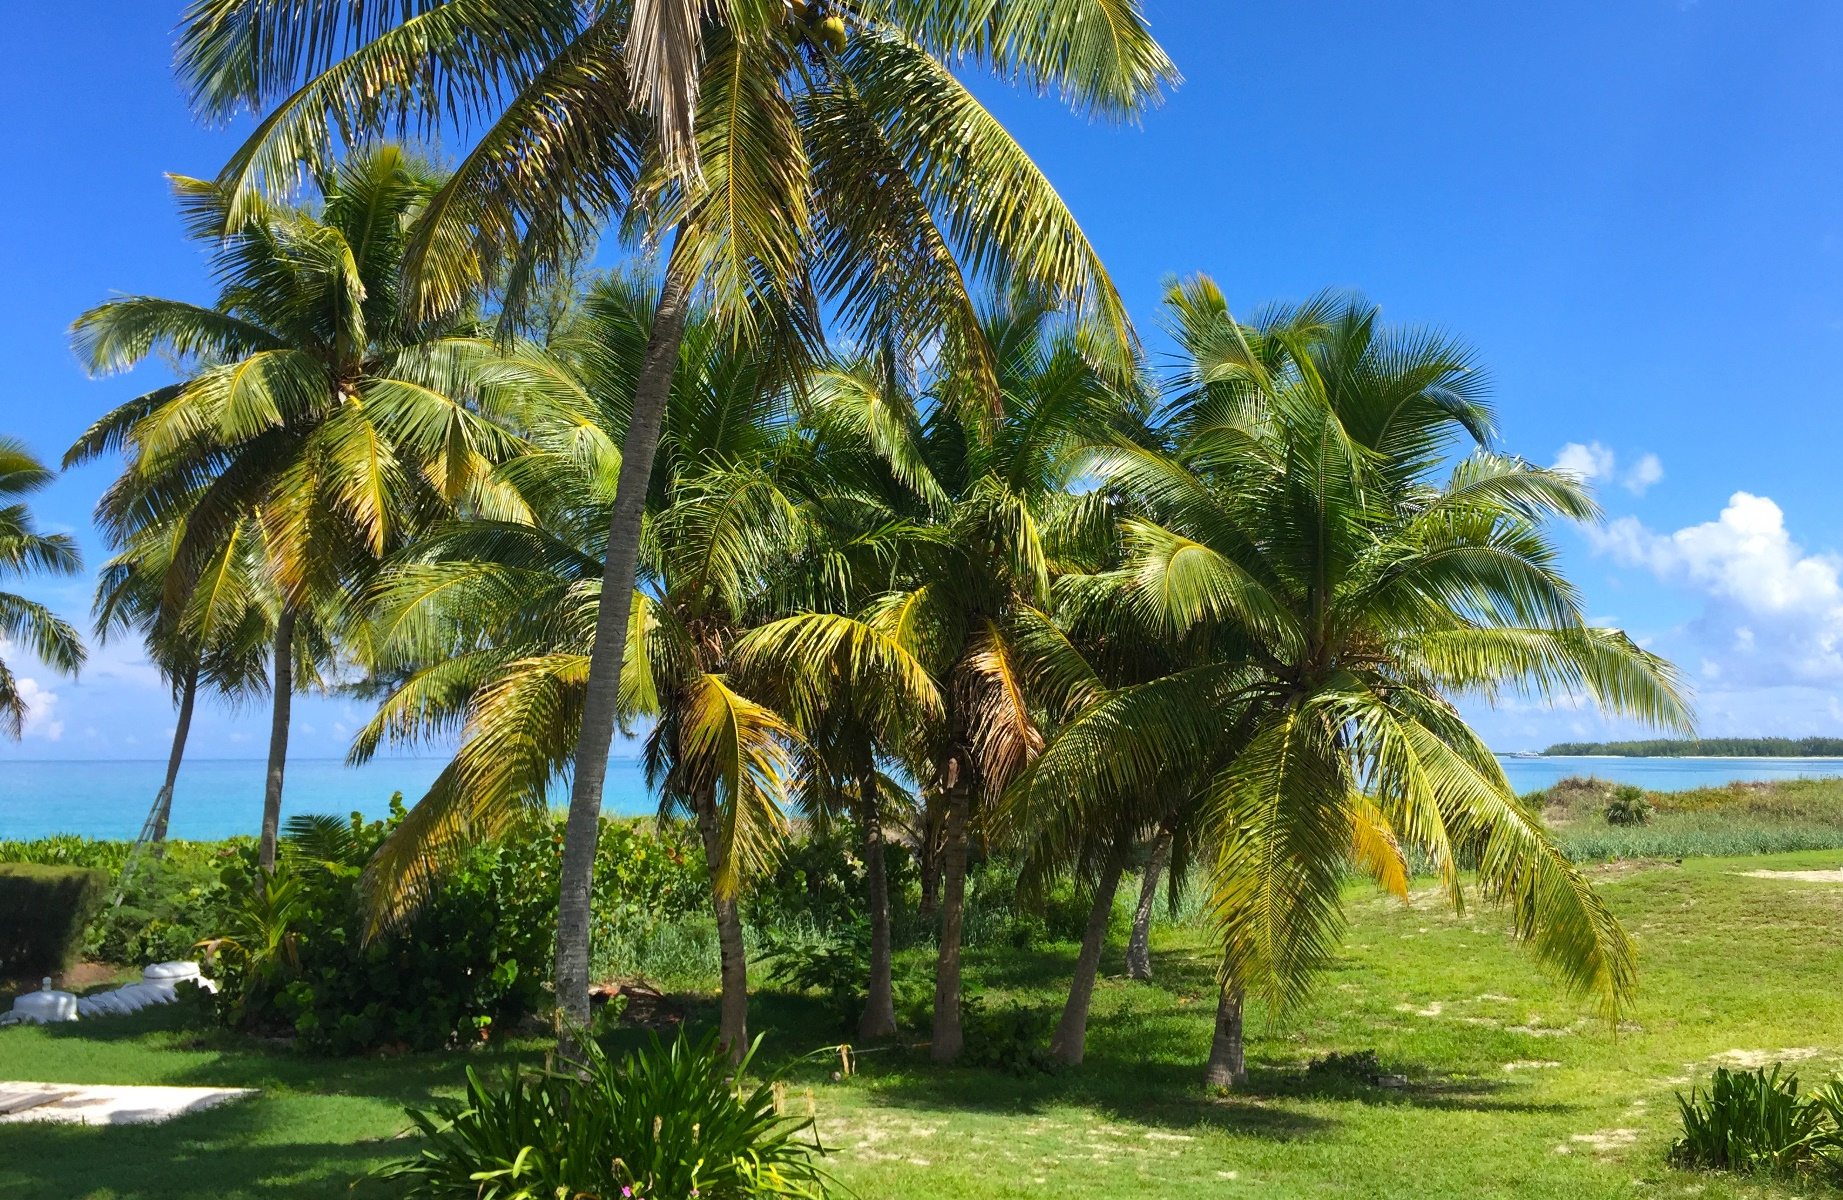 Co-op / Condo for Sale at Conch Villa, Great Harbour Cay - MLS 28250 Great Harbour Cay, Berry Islands, Bahamas